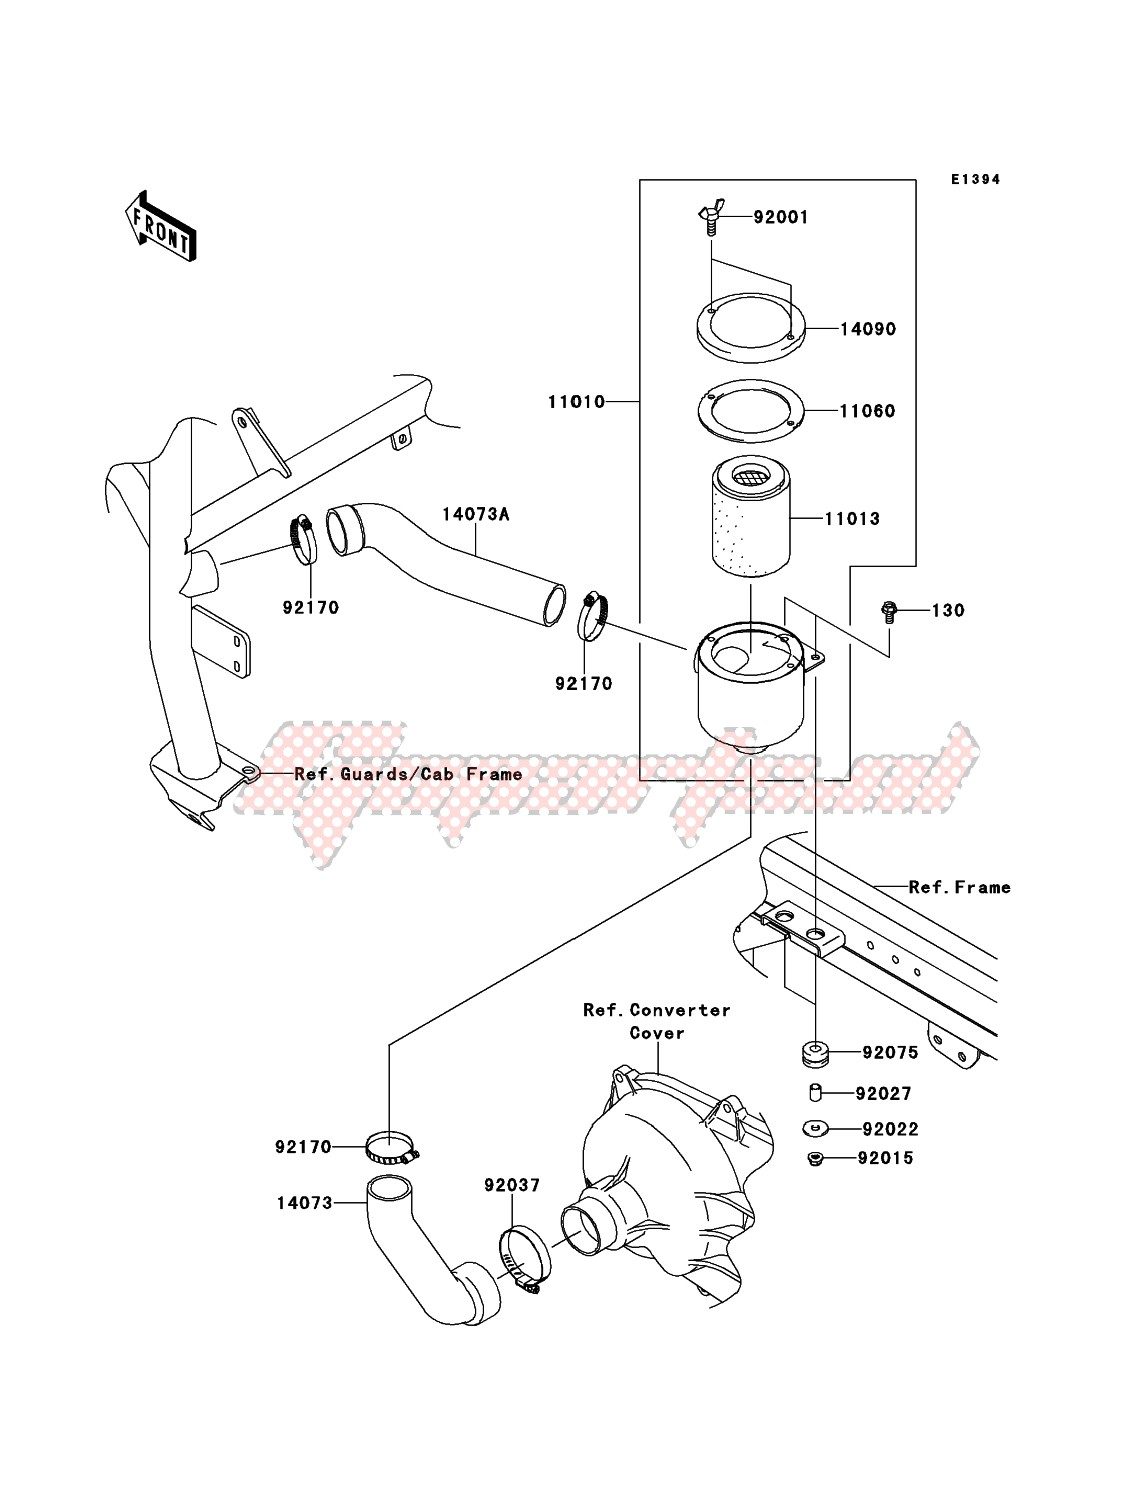 Air Cleaner-Belt Converter image